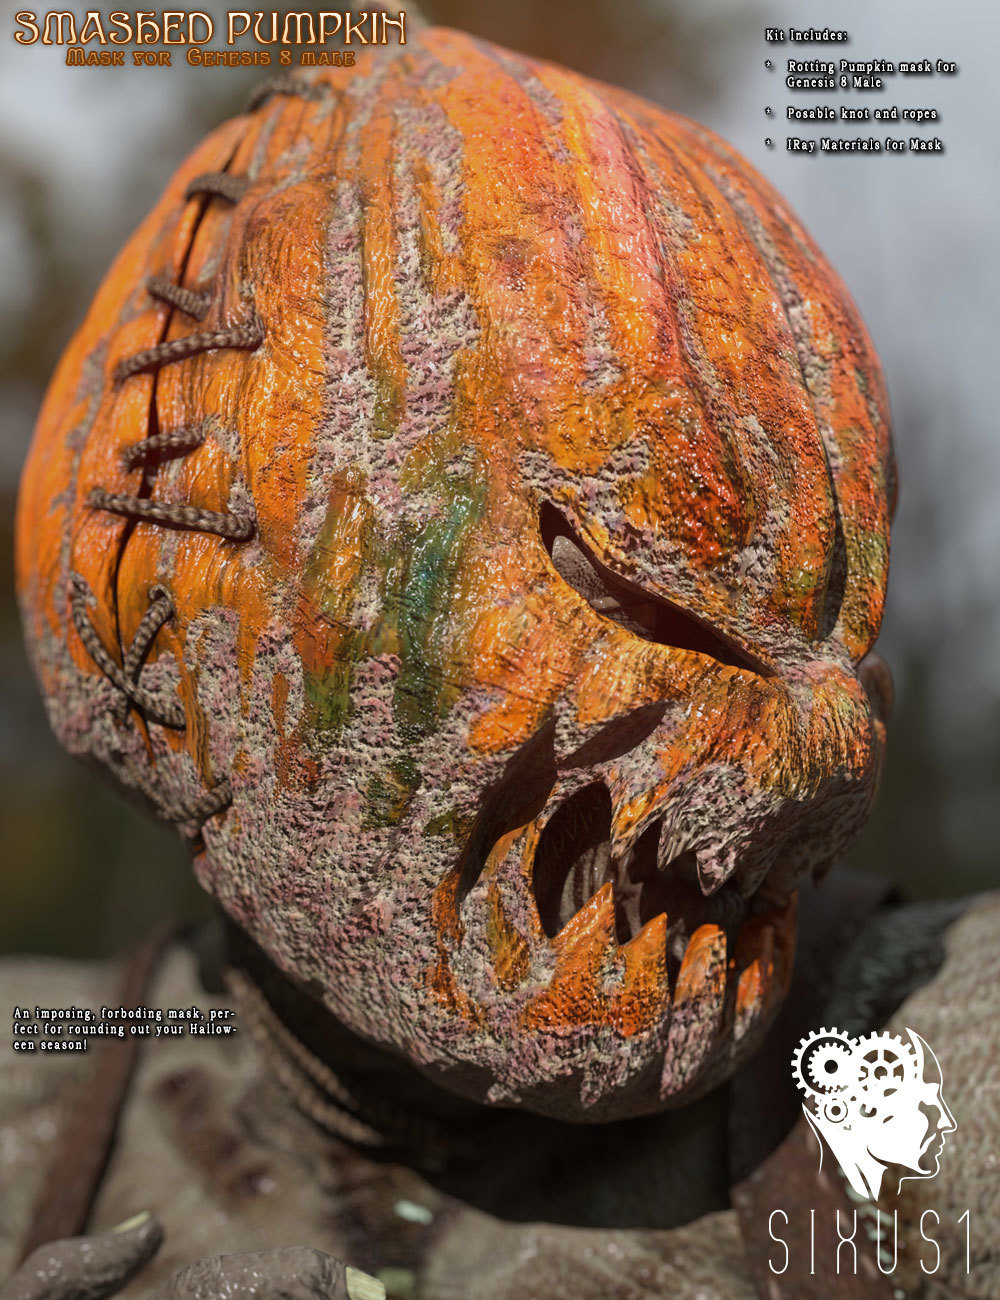 Smashed Pumpkin for Genesis 8 Male